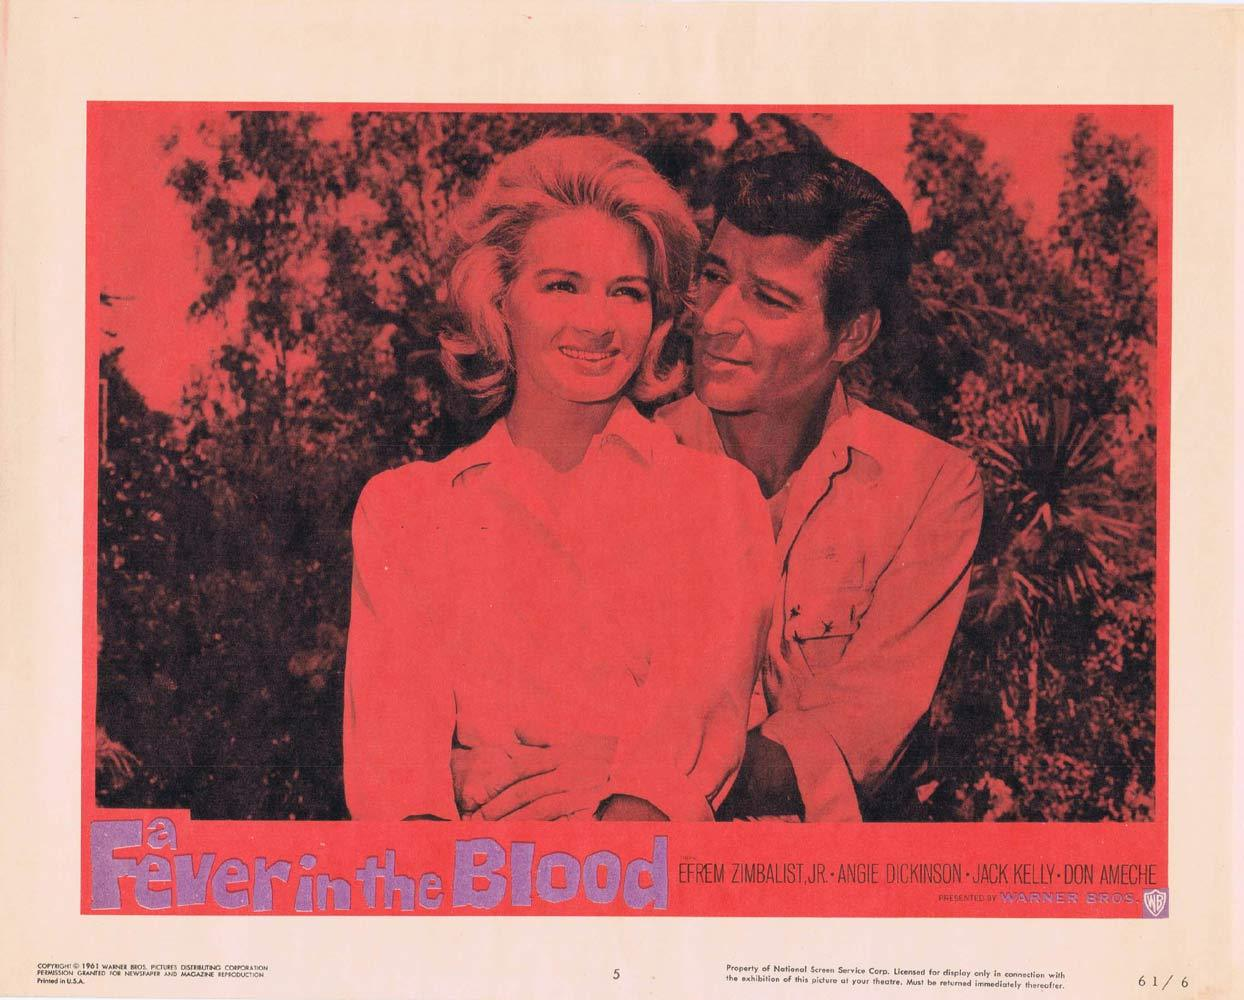 A FEVER IN THE BLOOD Lobby Card 5 Efrem Zimbalist Jr Angie Dickinson